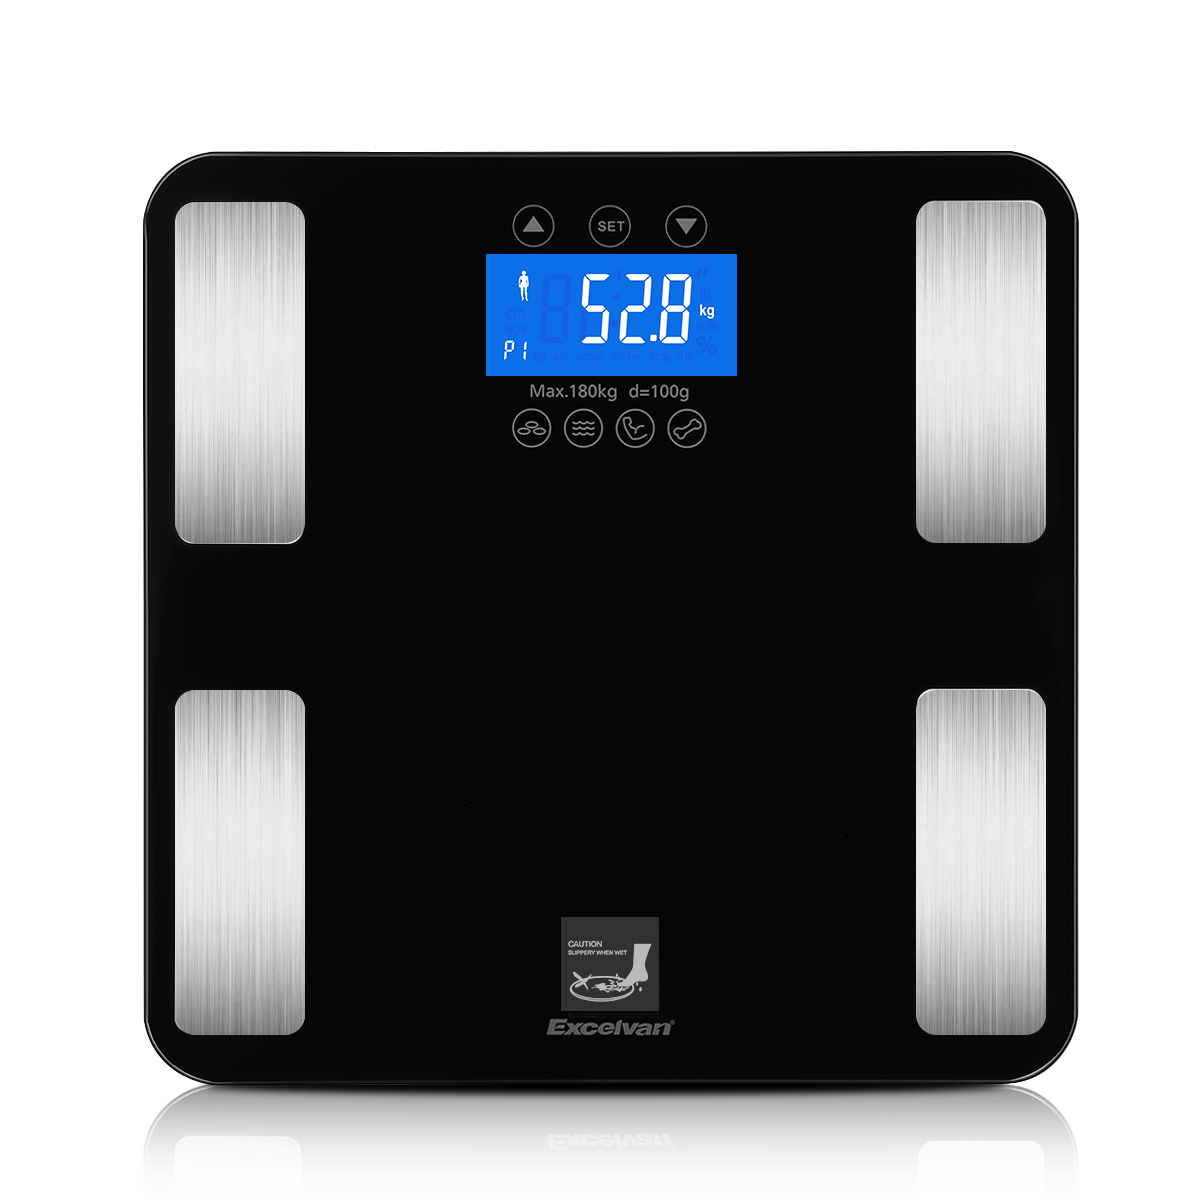 007da280ee6 Excelvan Smart Touch Weight Measure 400lb 0.1kg Digital Scale Track Body  Weight BMI Fat Water Calories Muscle Bone Mass Bathroom-in Bathroom Scales  from ...